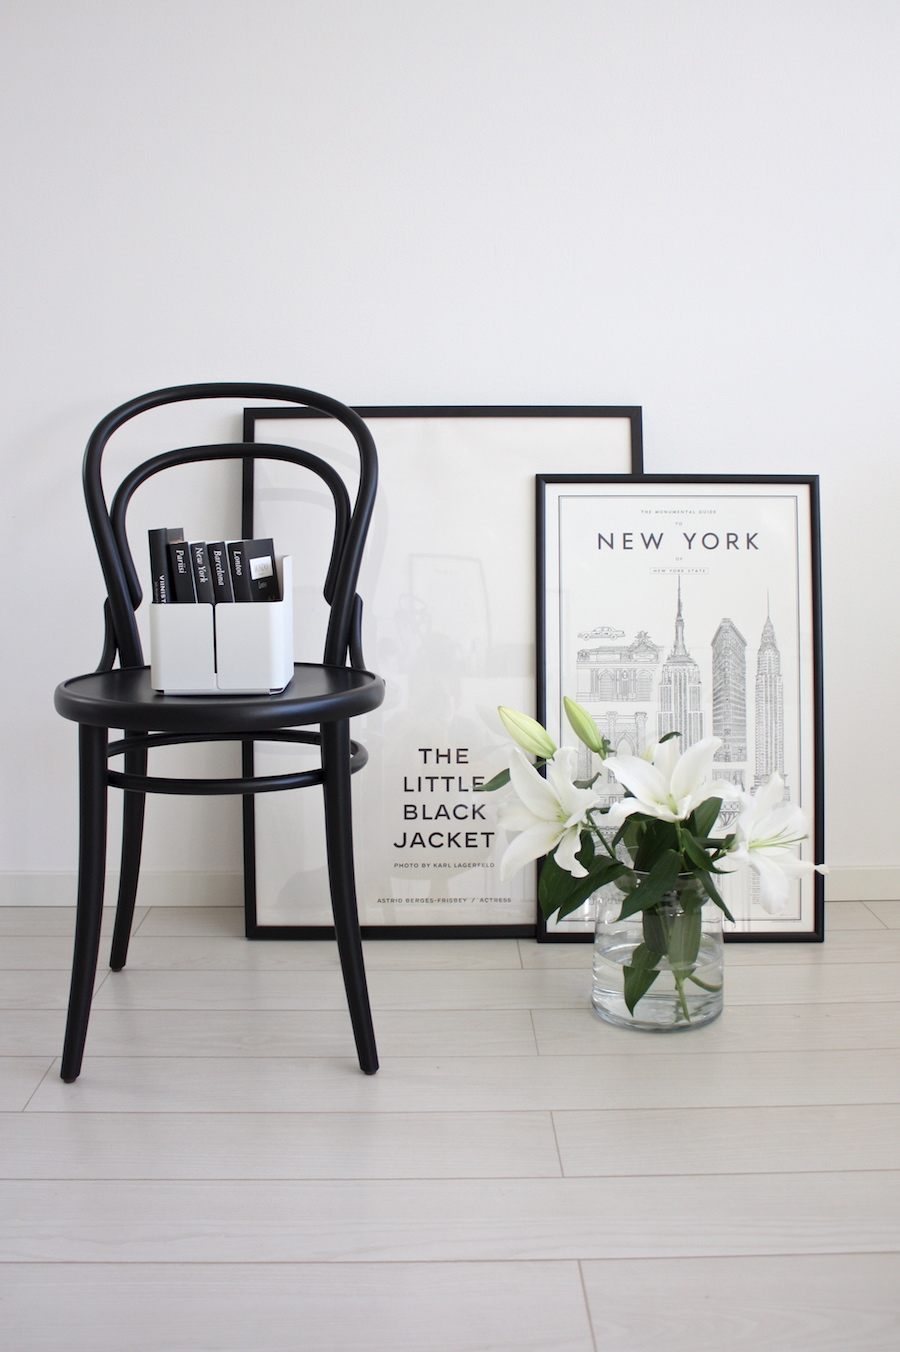 Black bentwood chair with New York poster